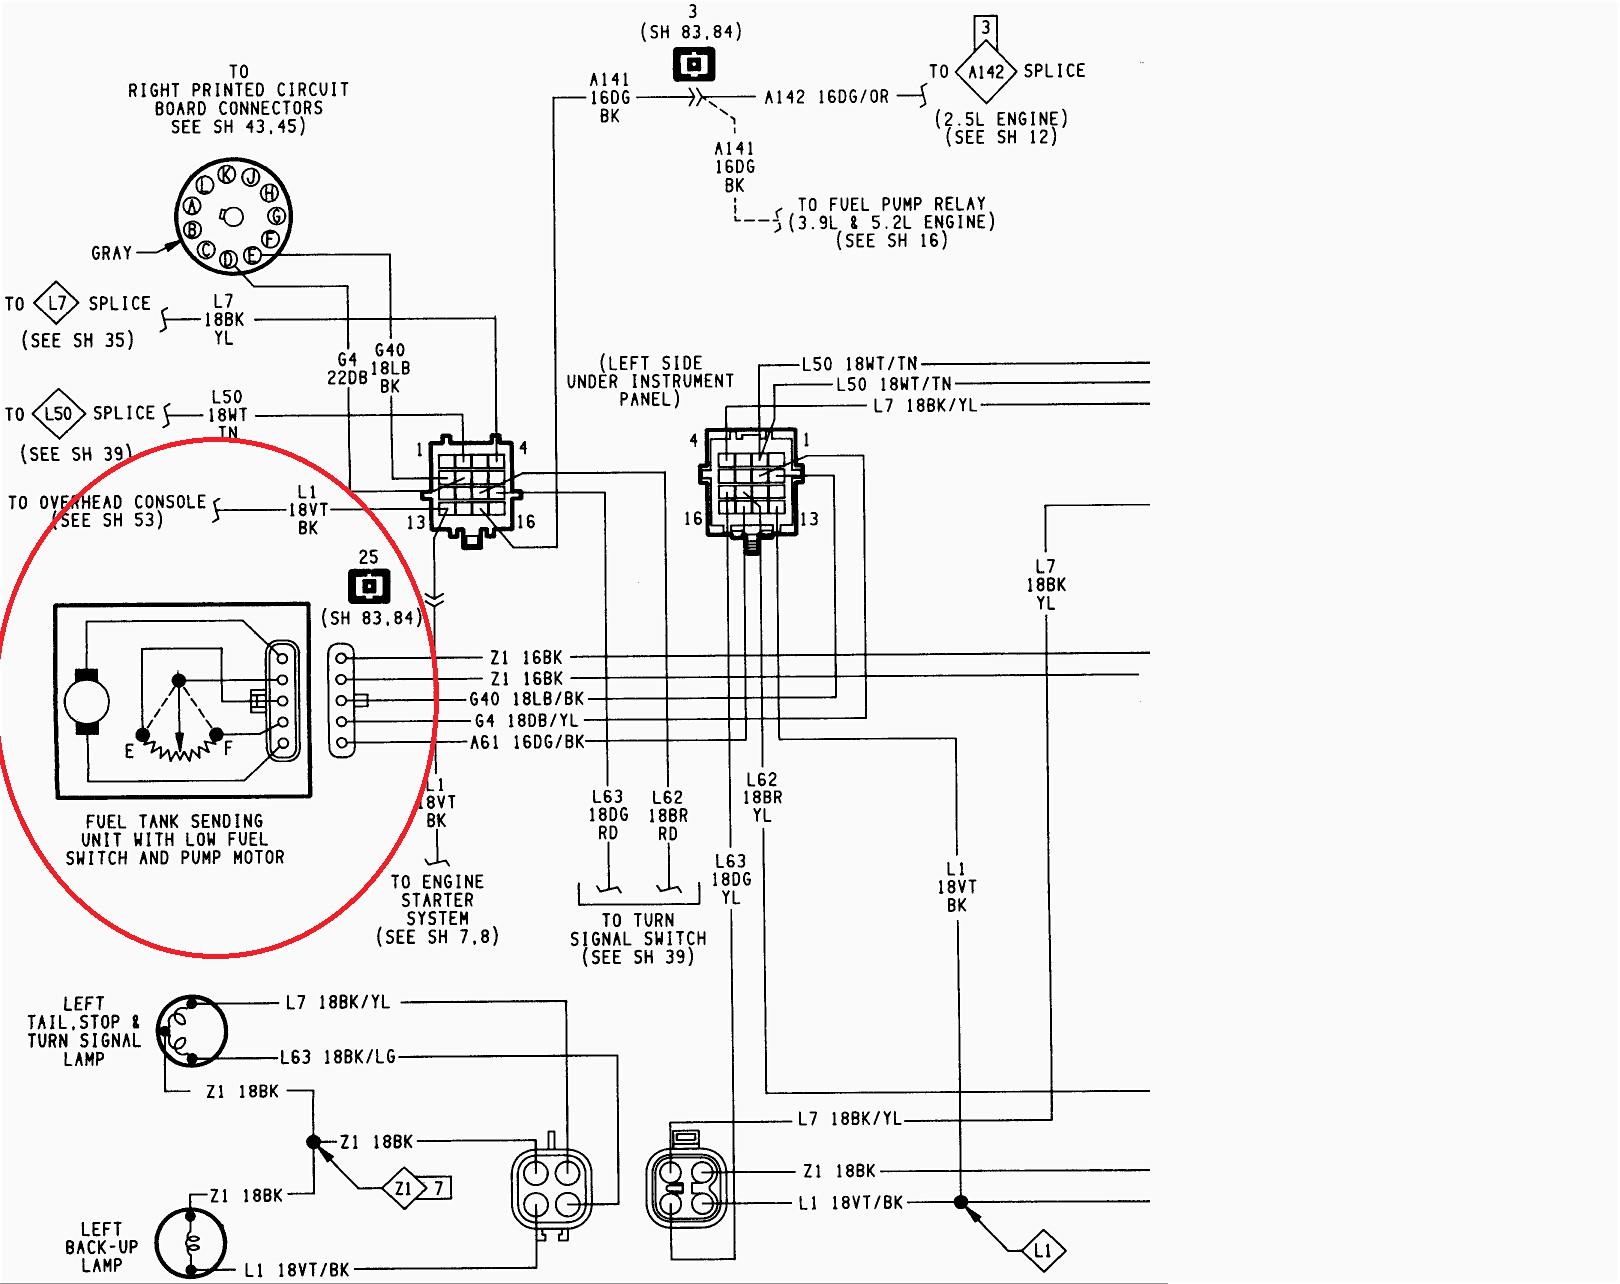 Ford F 150 Fuel Gauge Wiring Diagram - Wiring Diagram Data - Fuel Gauge Sending Unit Wiring Diagram